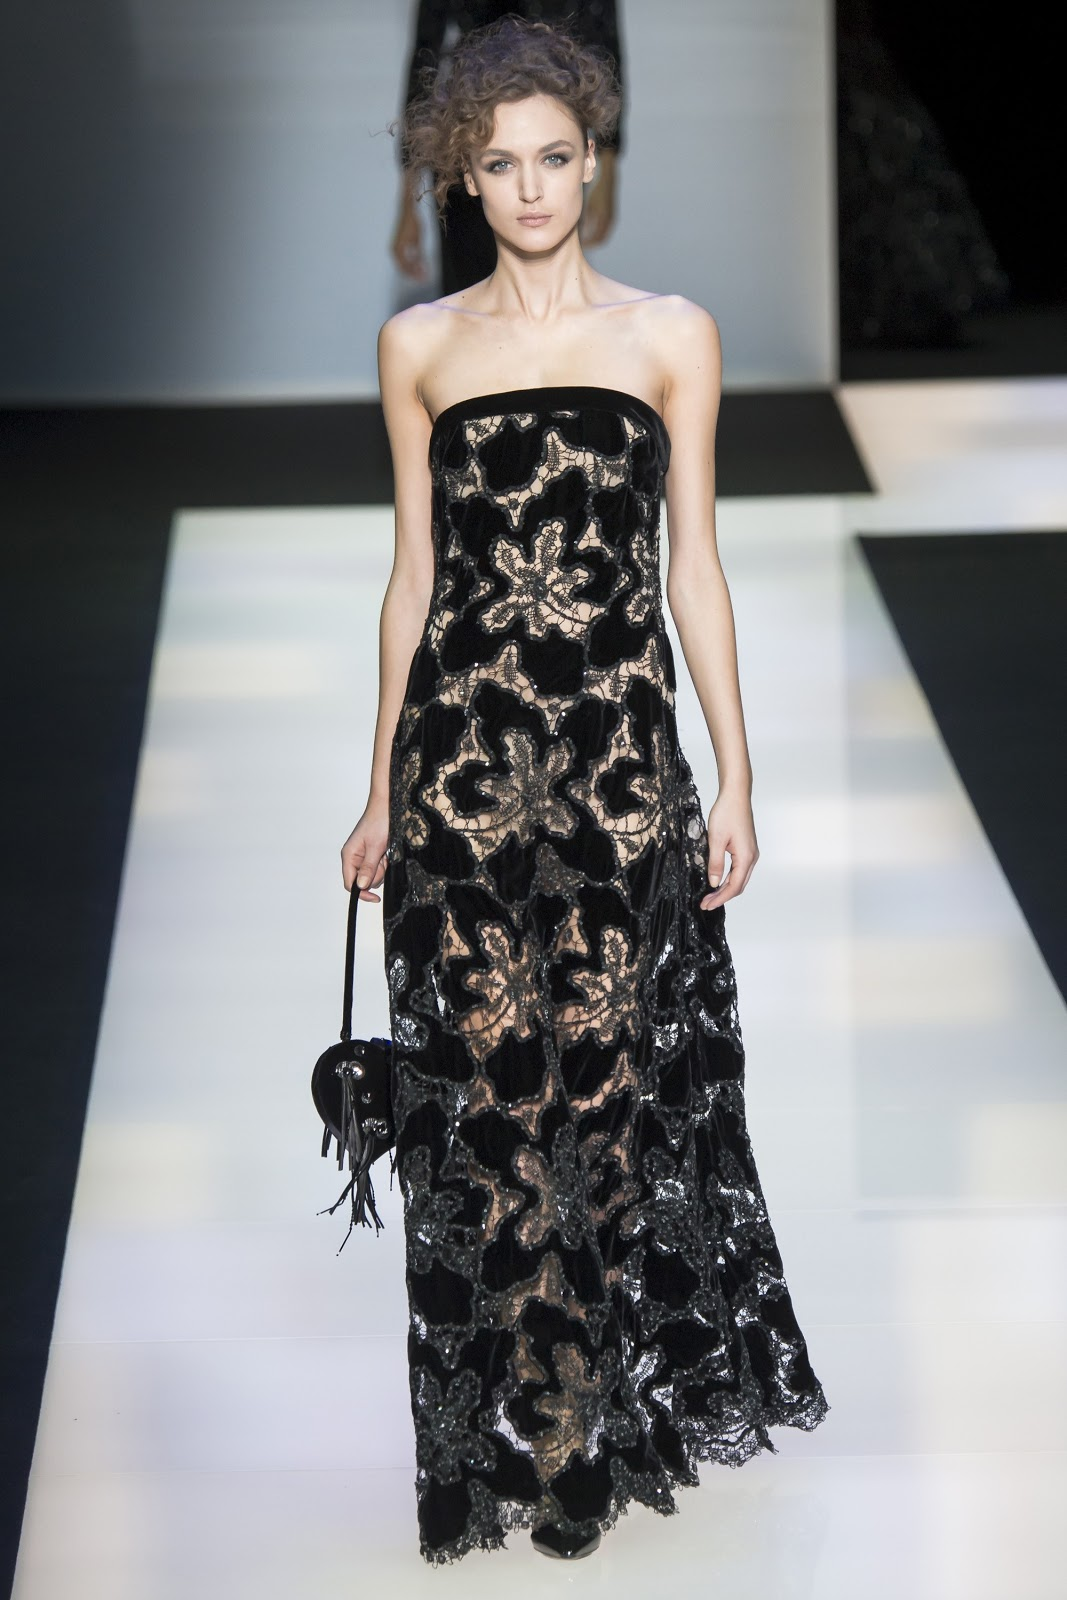 Fashion Runway | \'Black Velvet\', the new Giorgio Armani Women\'s Fall ...